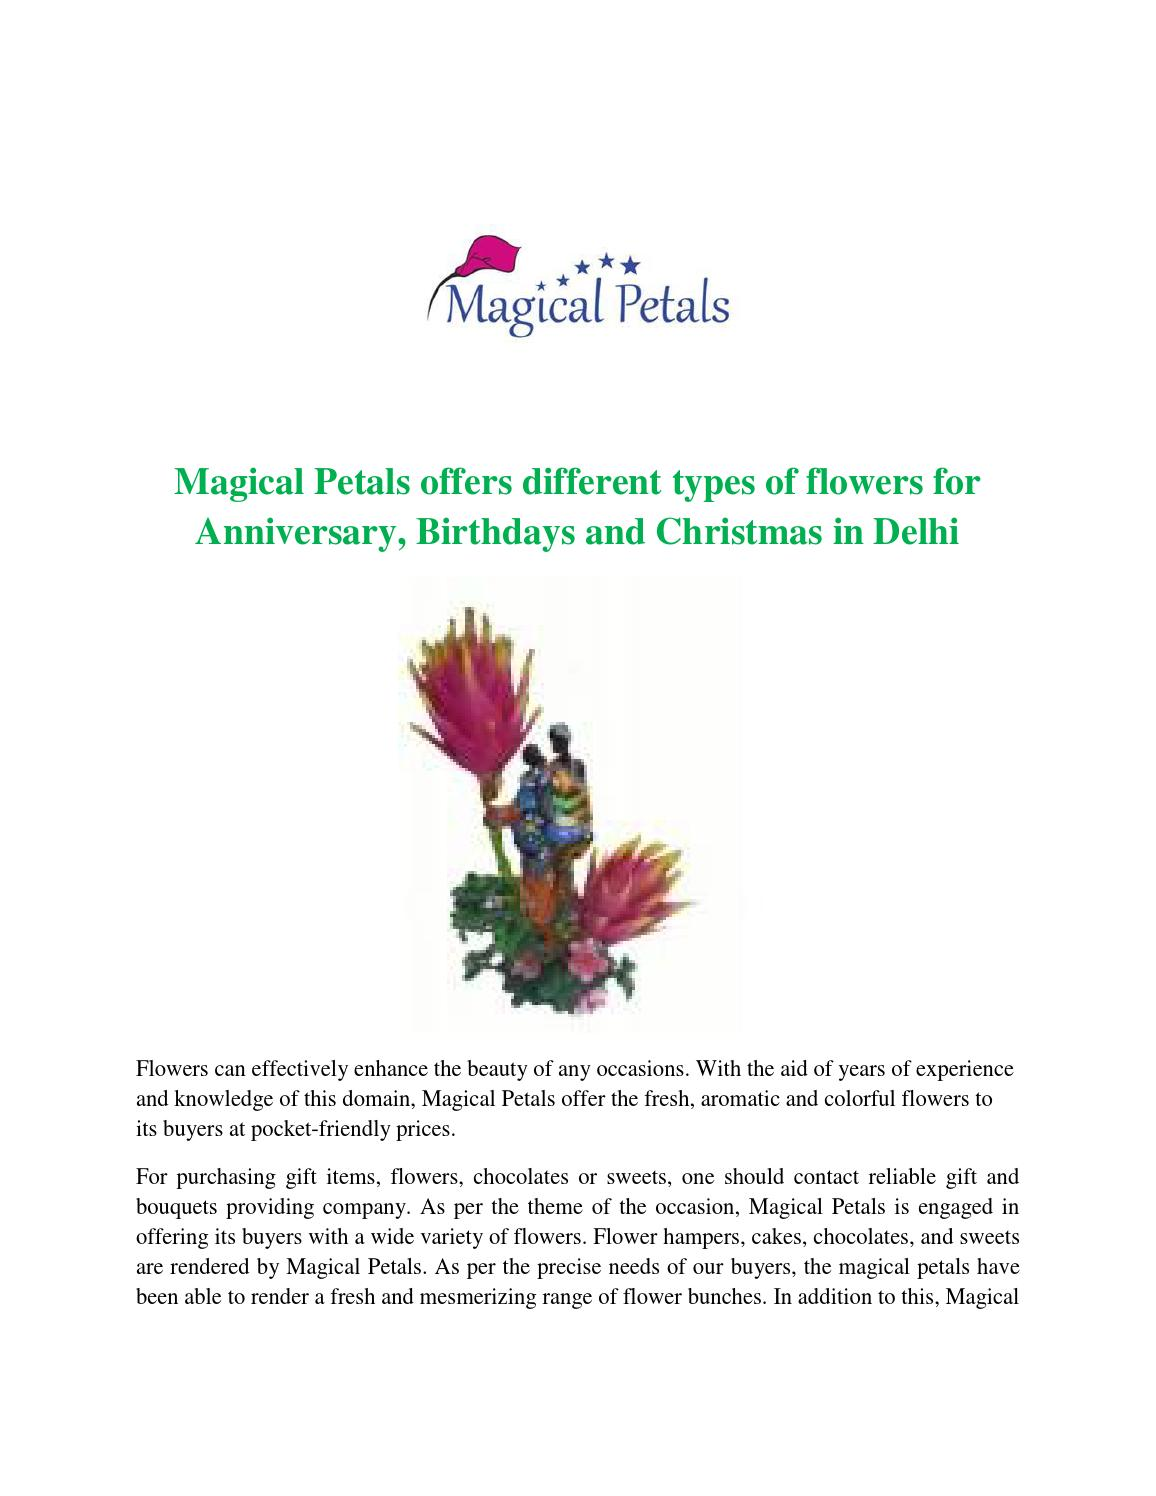 Magical petals offers different types of flowers for anniversary magical petals offers different types of flowers for anniversary birthdays and christmas in delhi by magicalpetals issuu izmirmasajfo